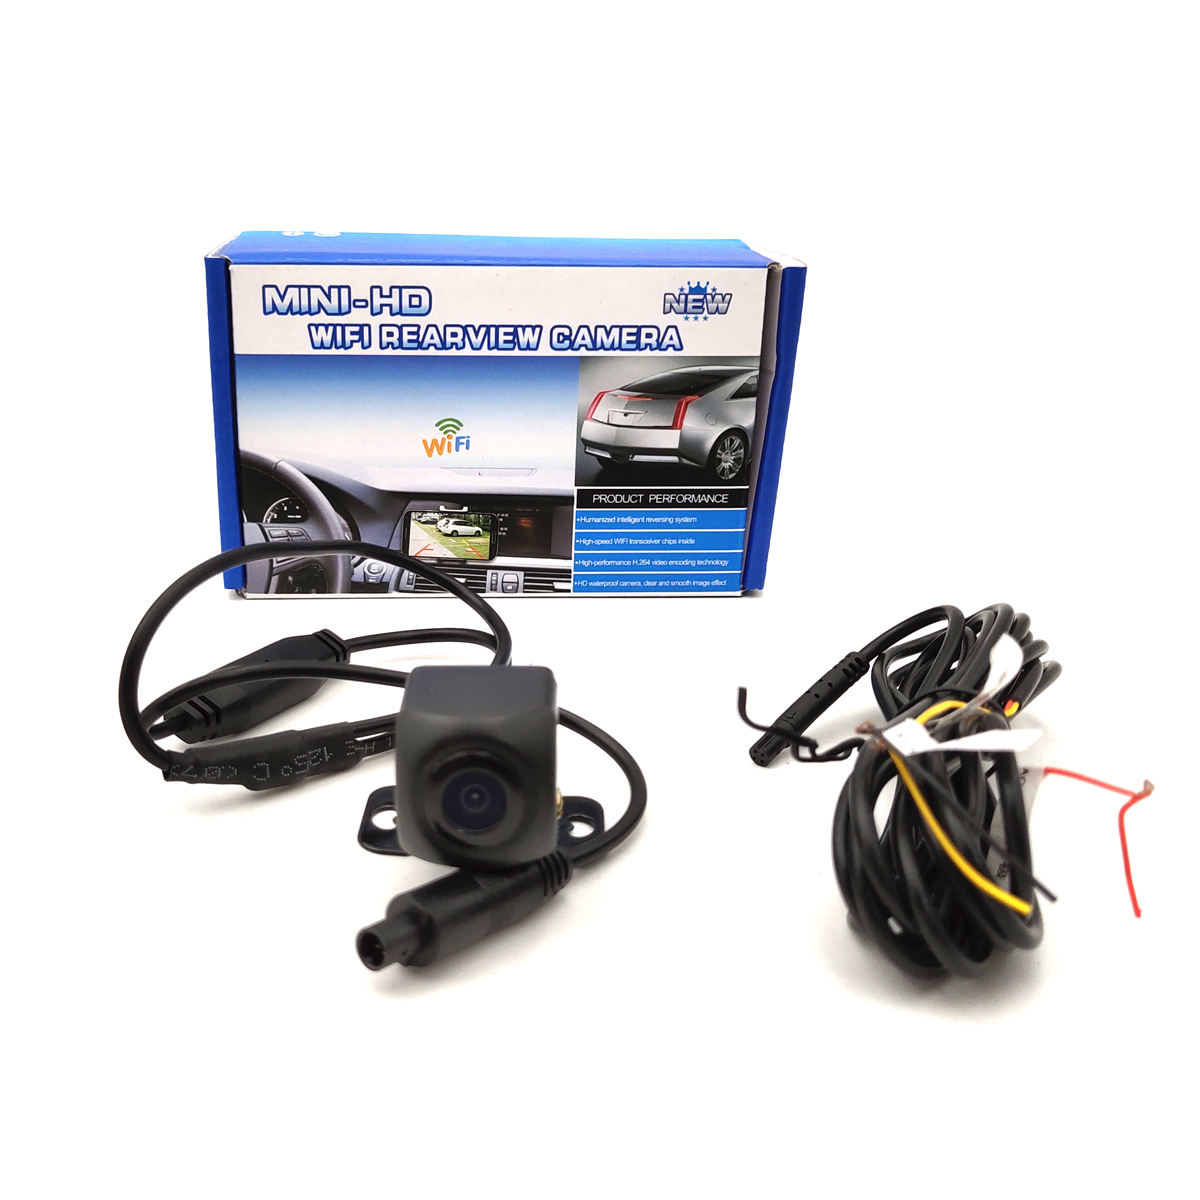 Mini WiFi Car Rear View Parking Reverse Camera Safe For iOS/Android With Night Vision